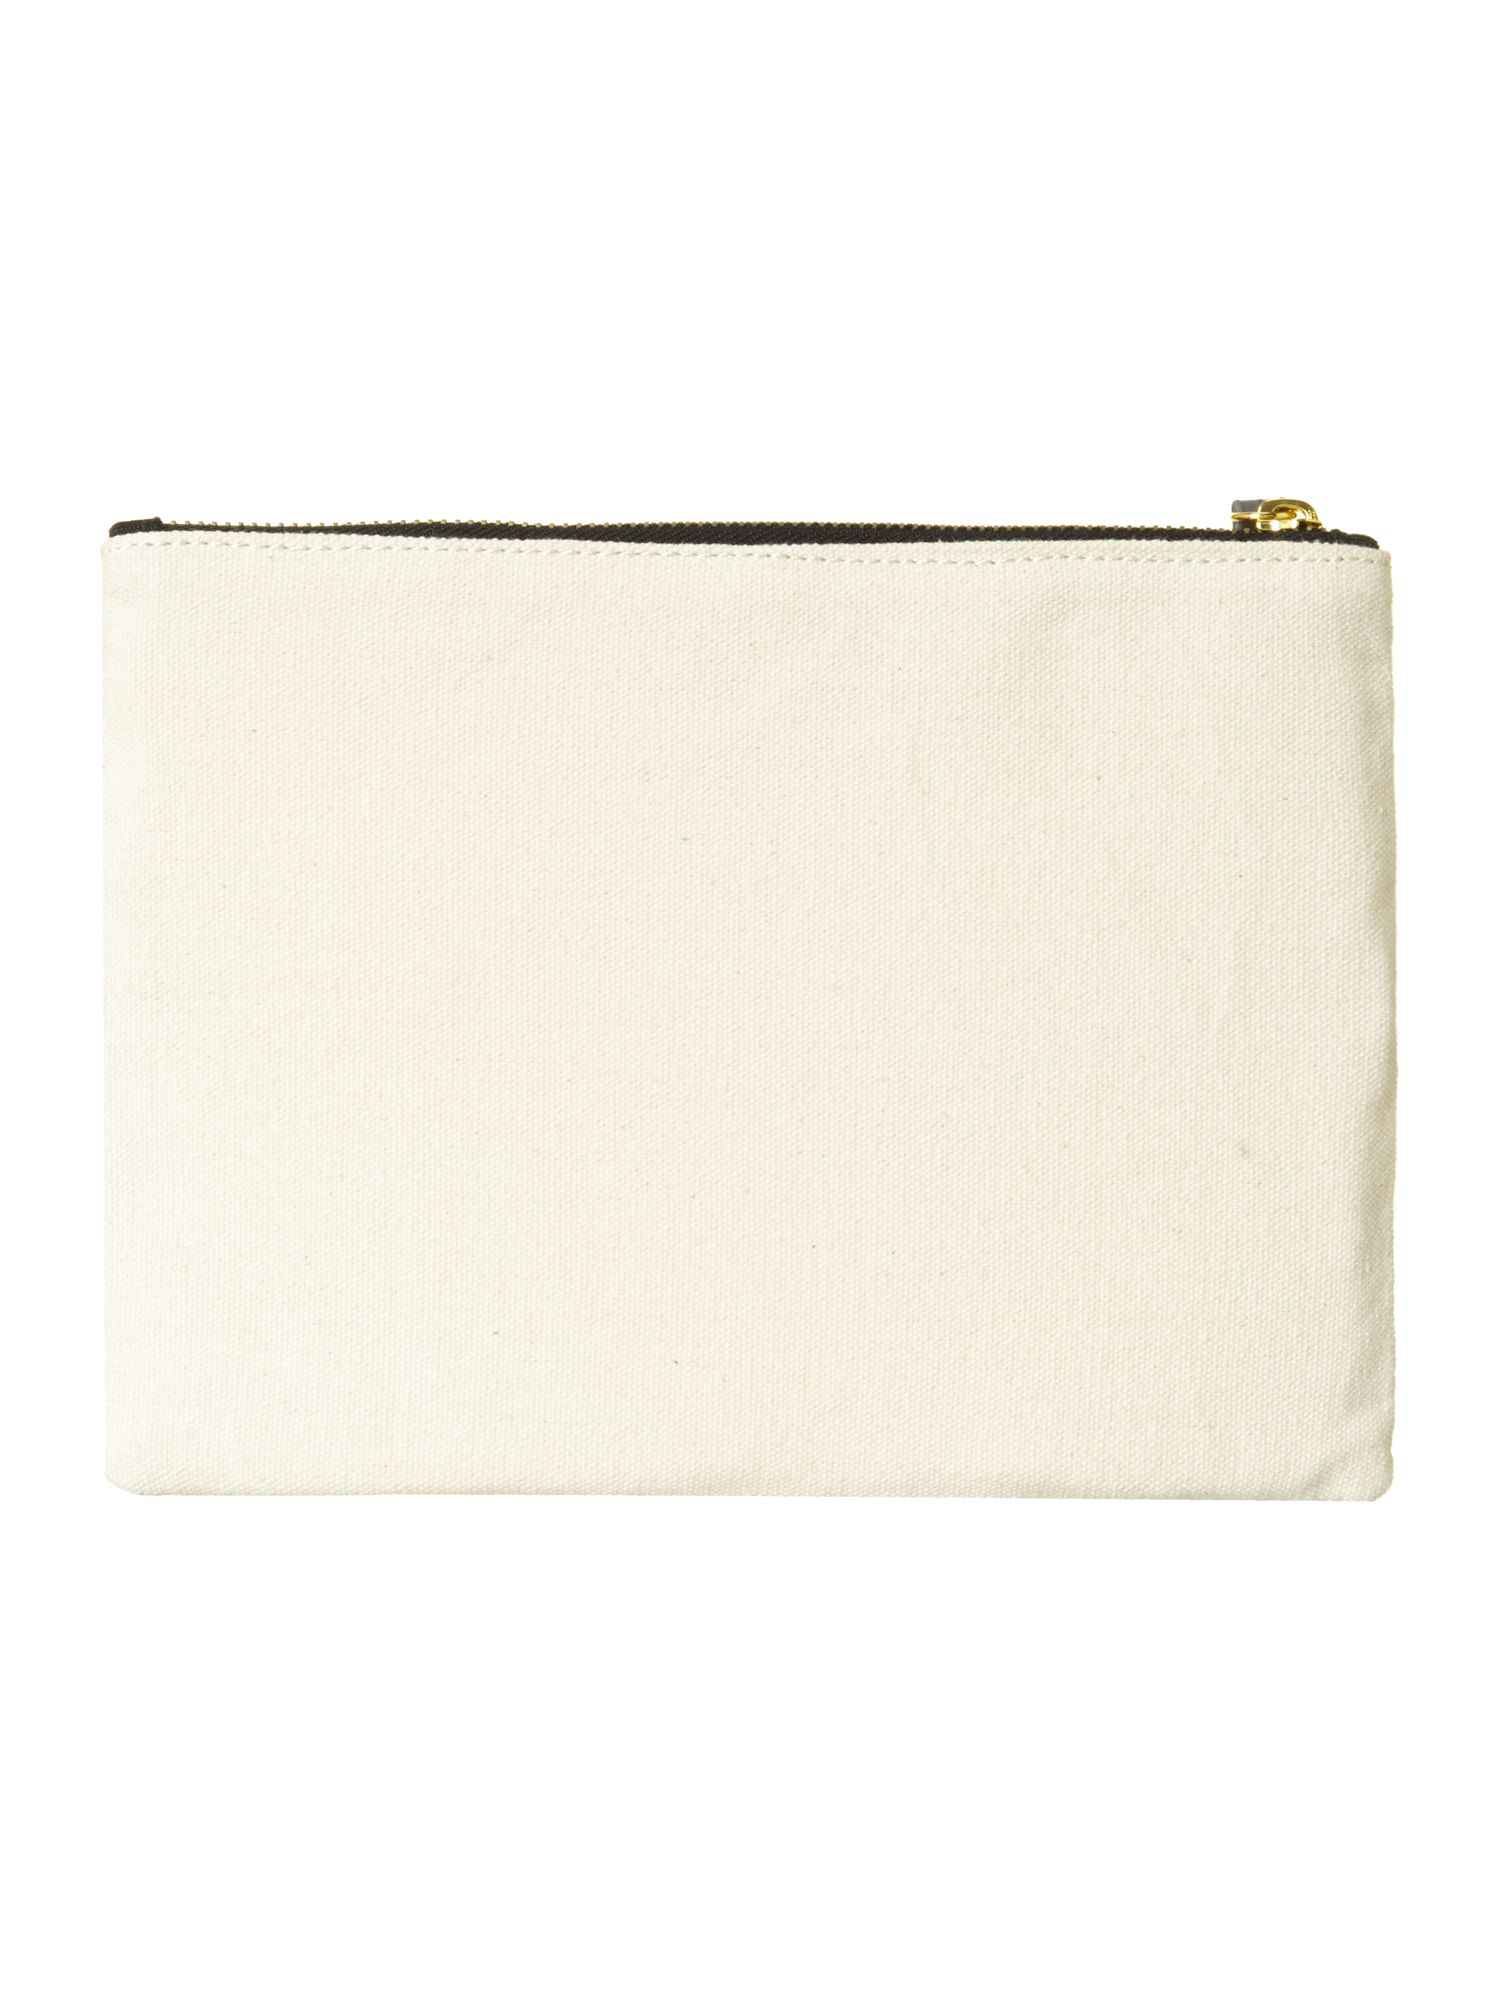 Bag to bar pochette